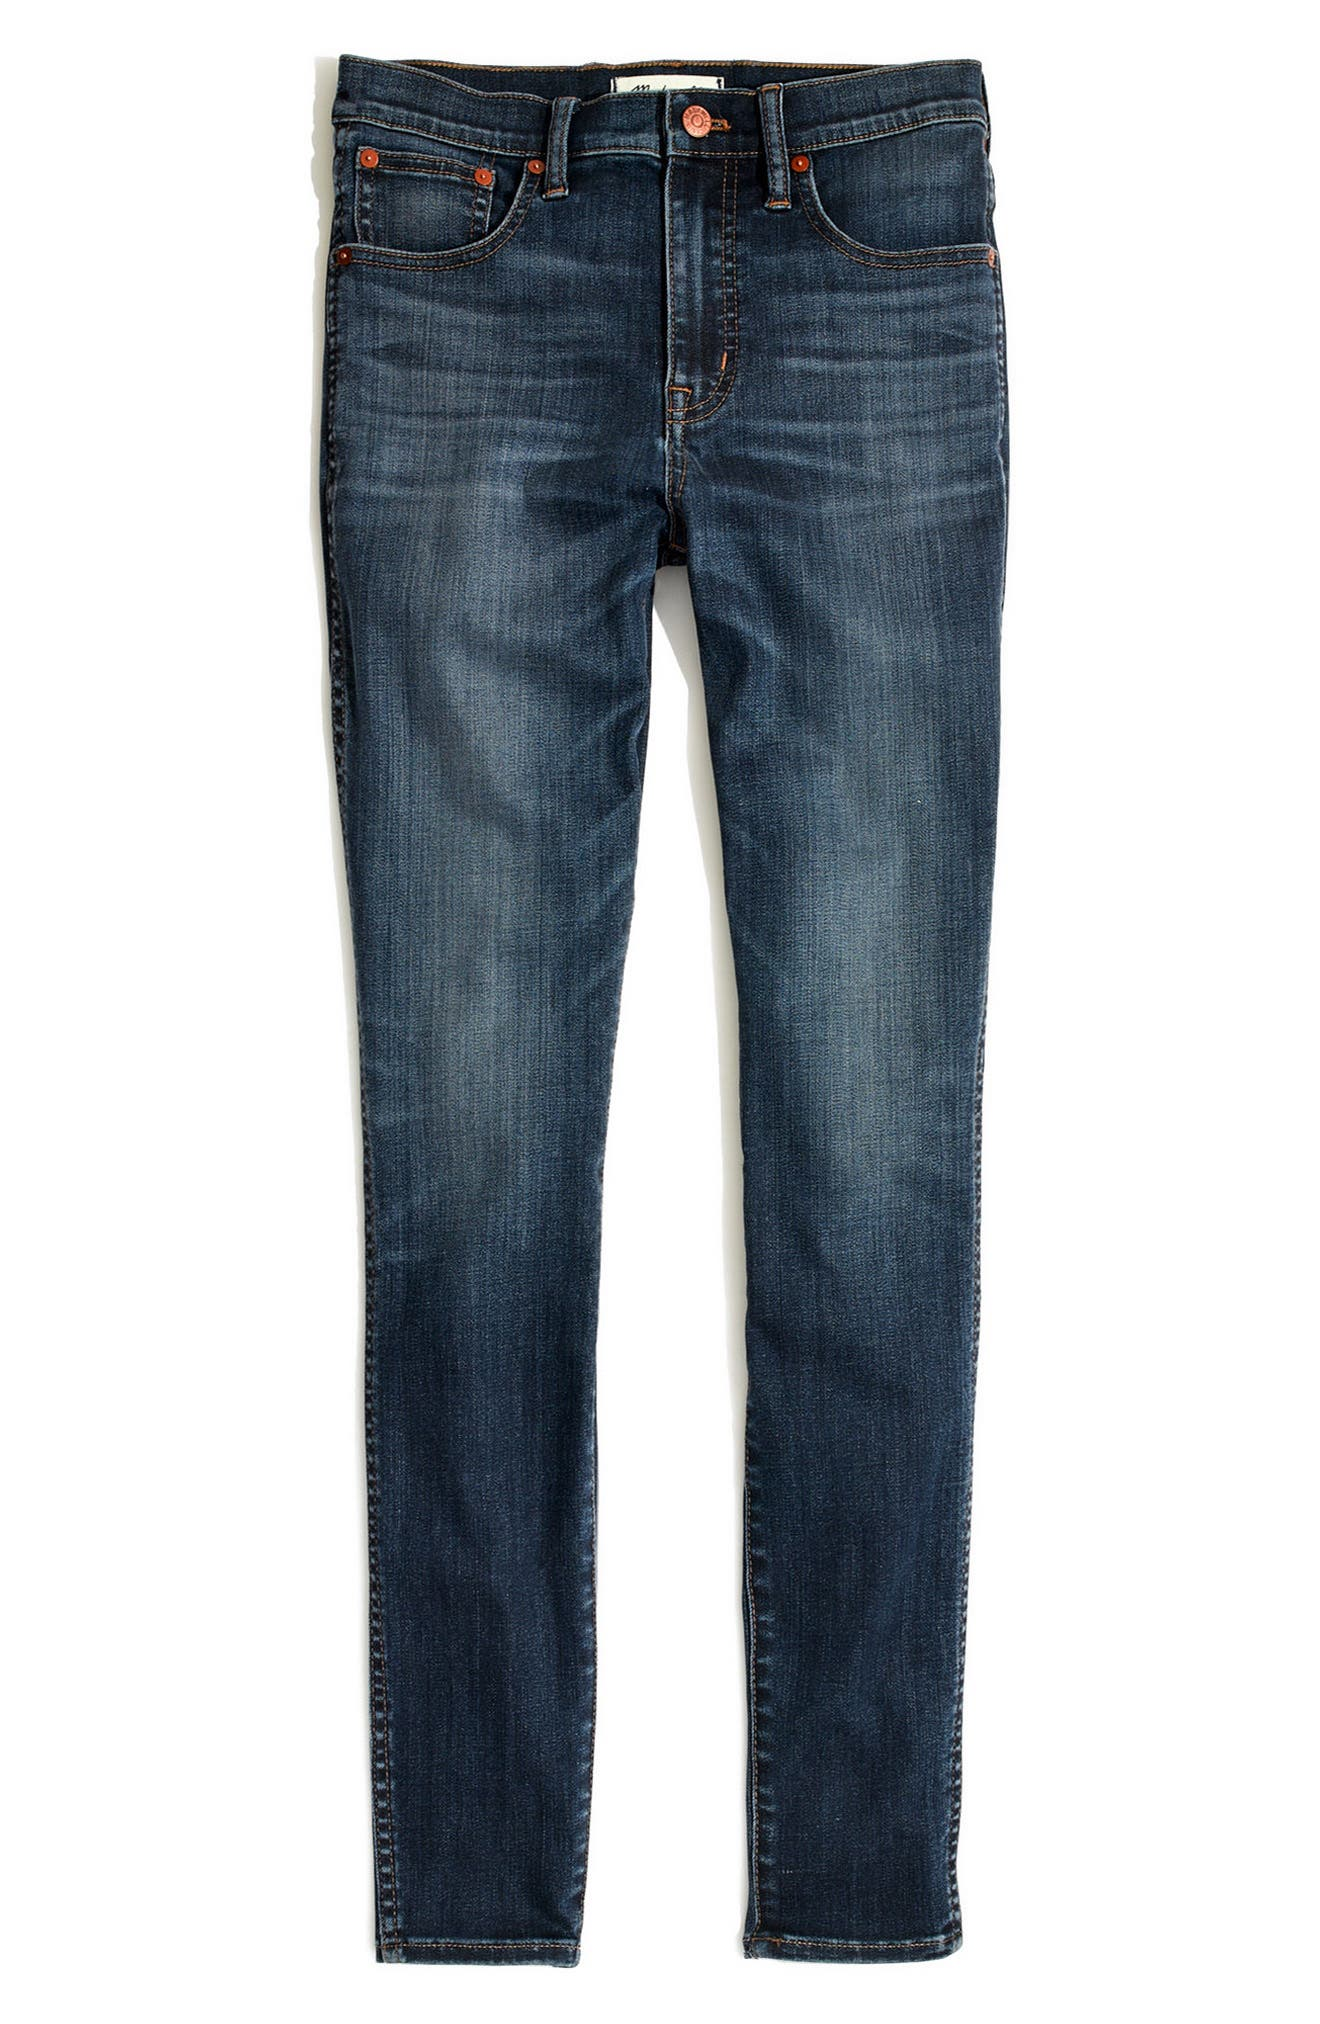 10-Inch High Rise Skinny Jeans,                             Alternate thumbnail 4, color,                             DANNY